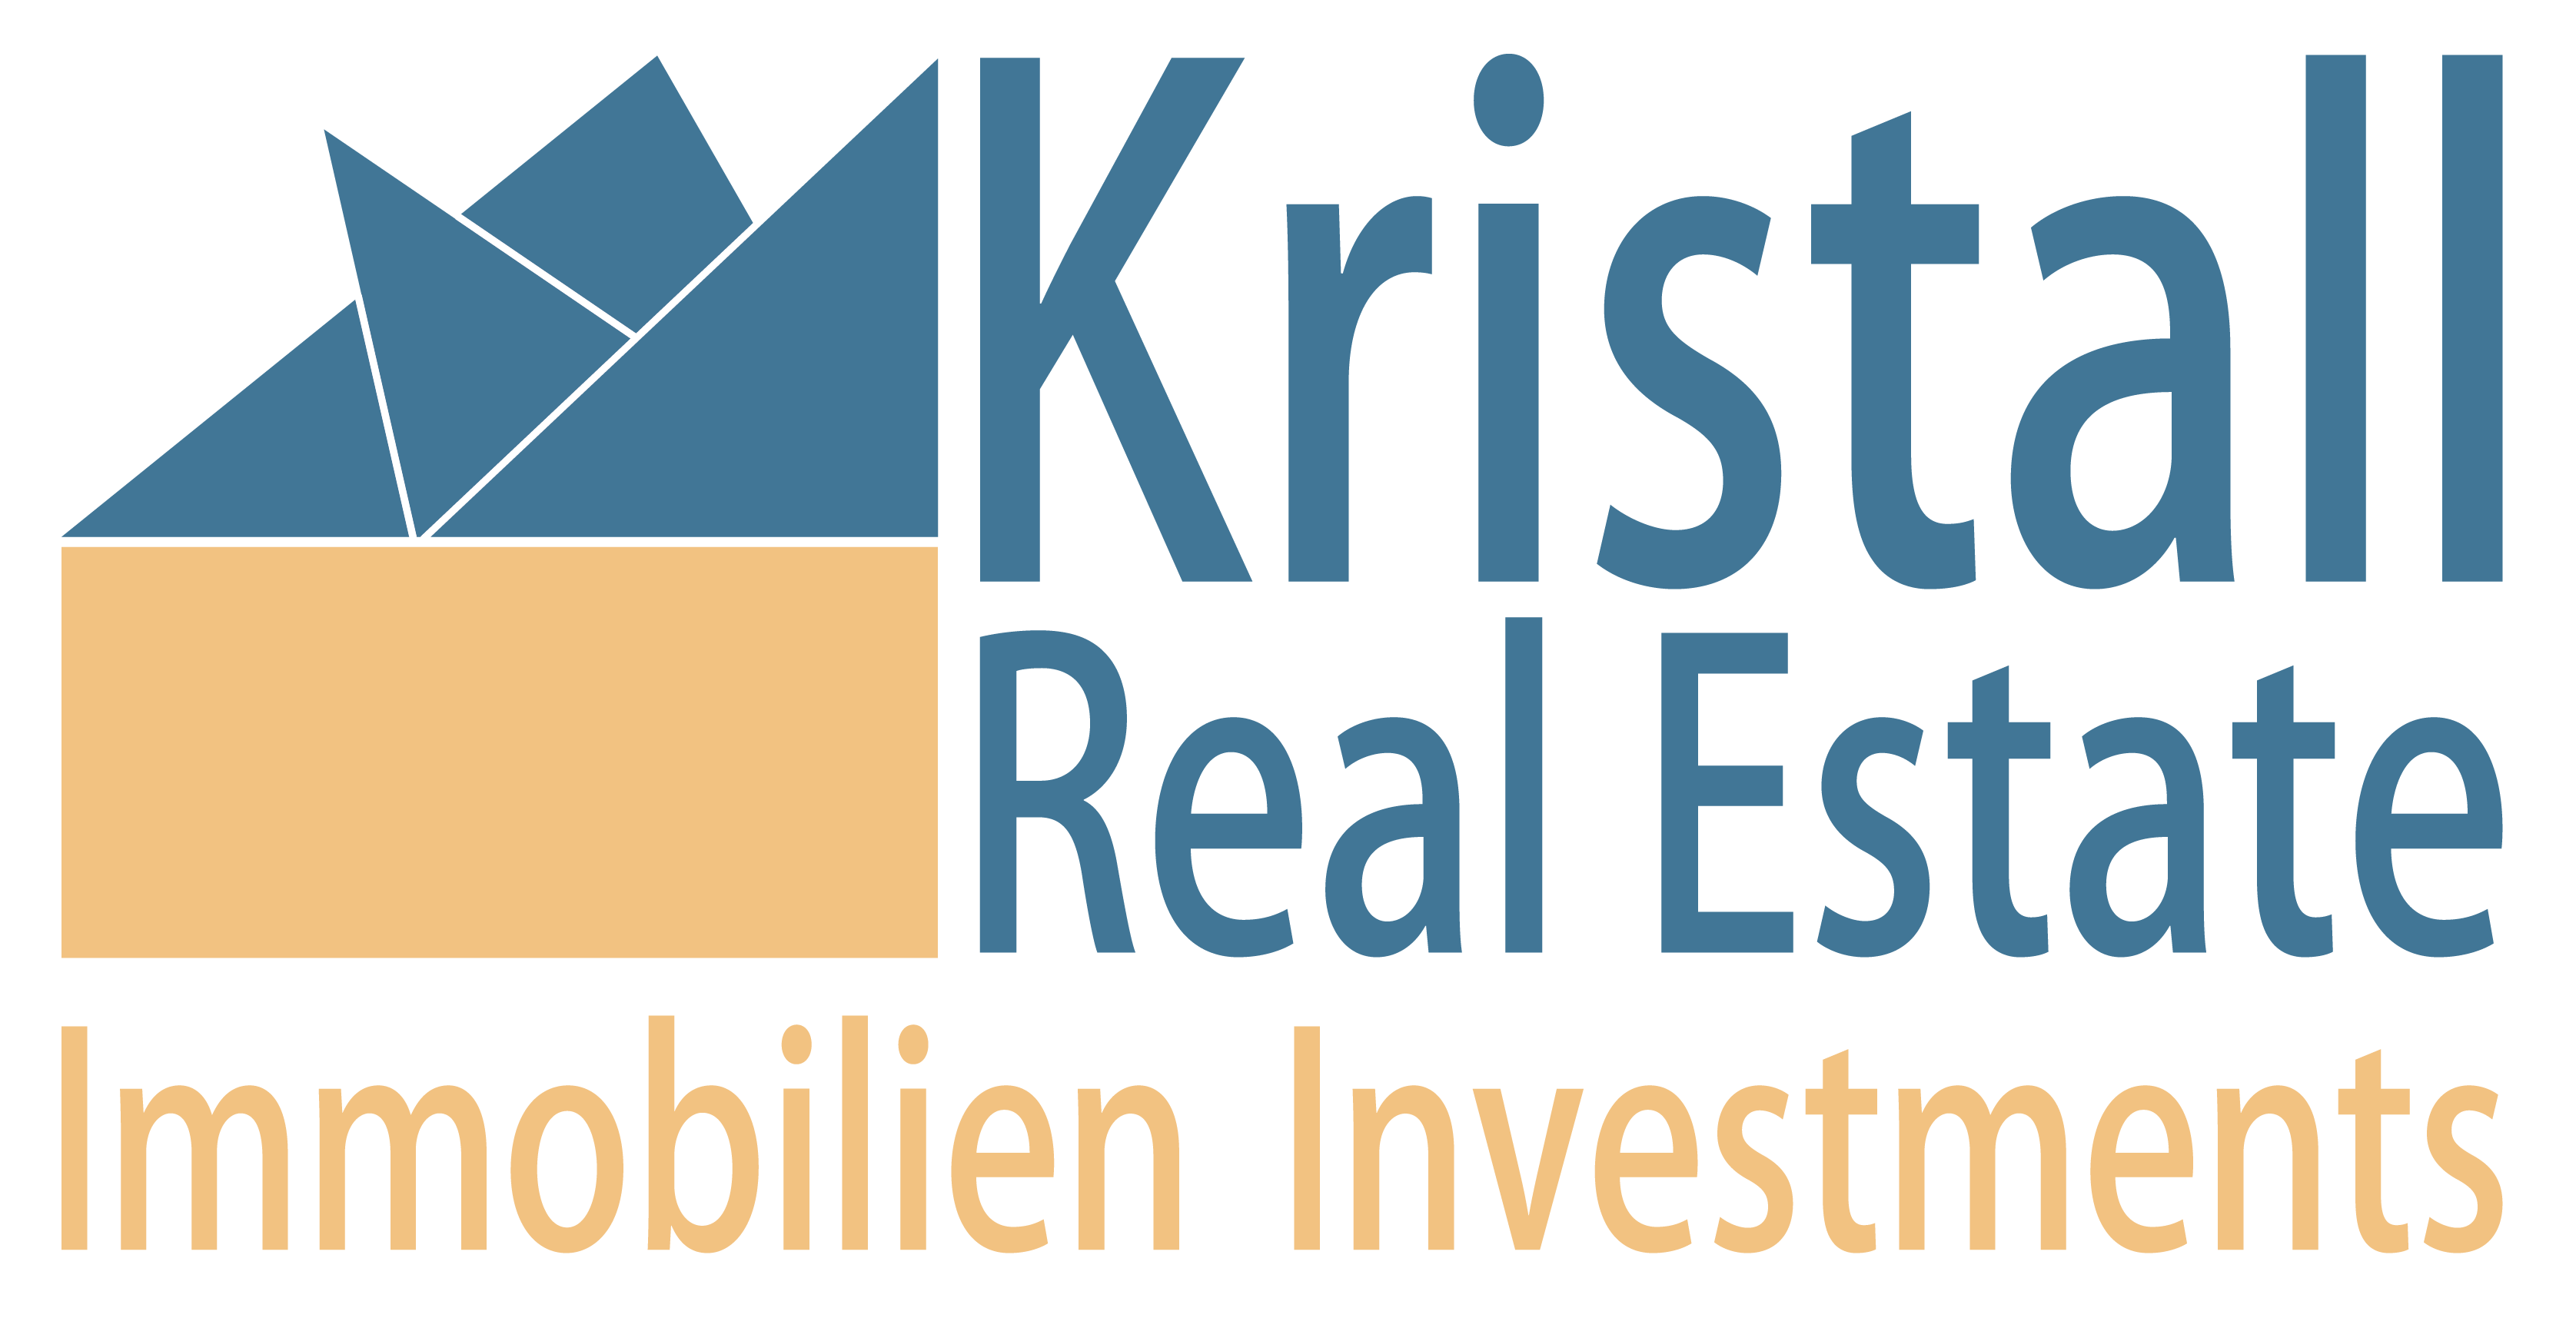 Immobilien investments